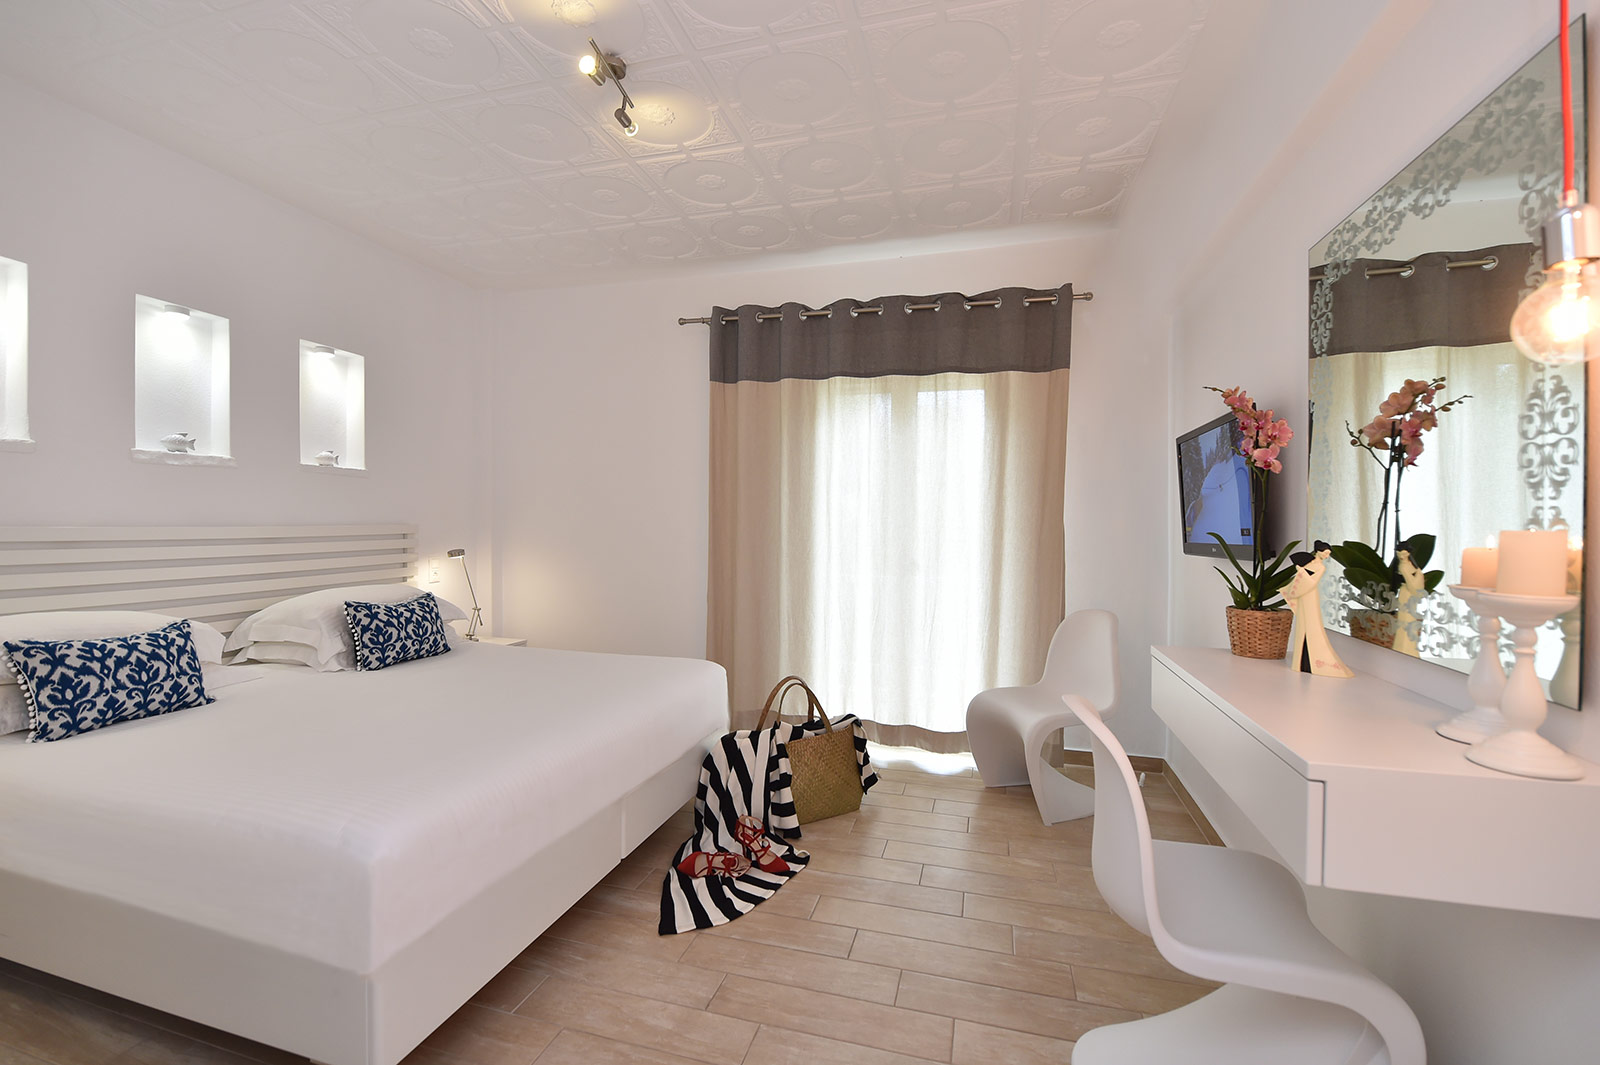 Explore the rooms in Apollon Hotel